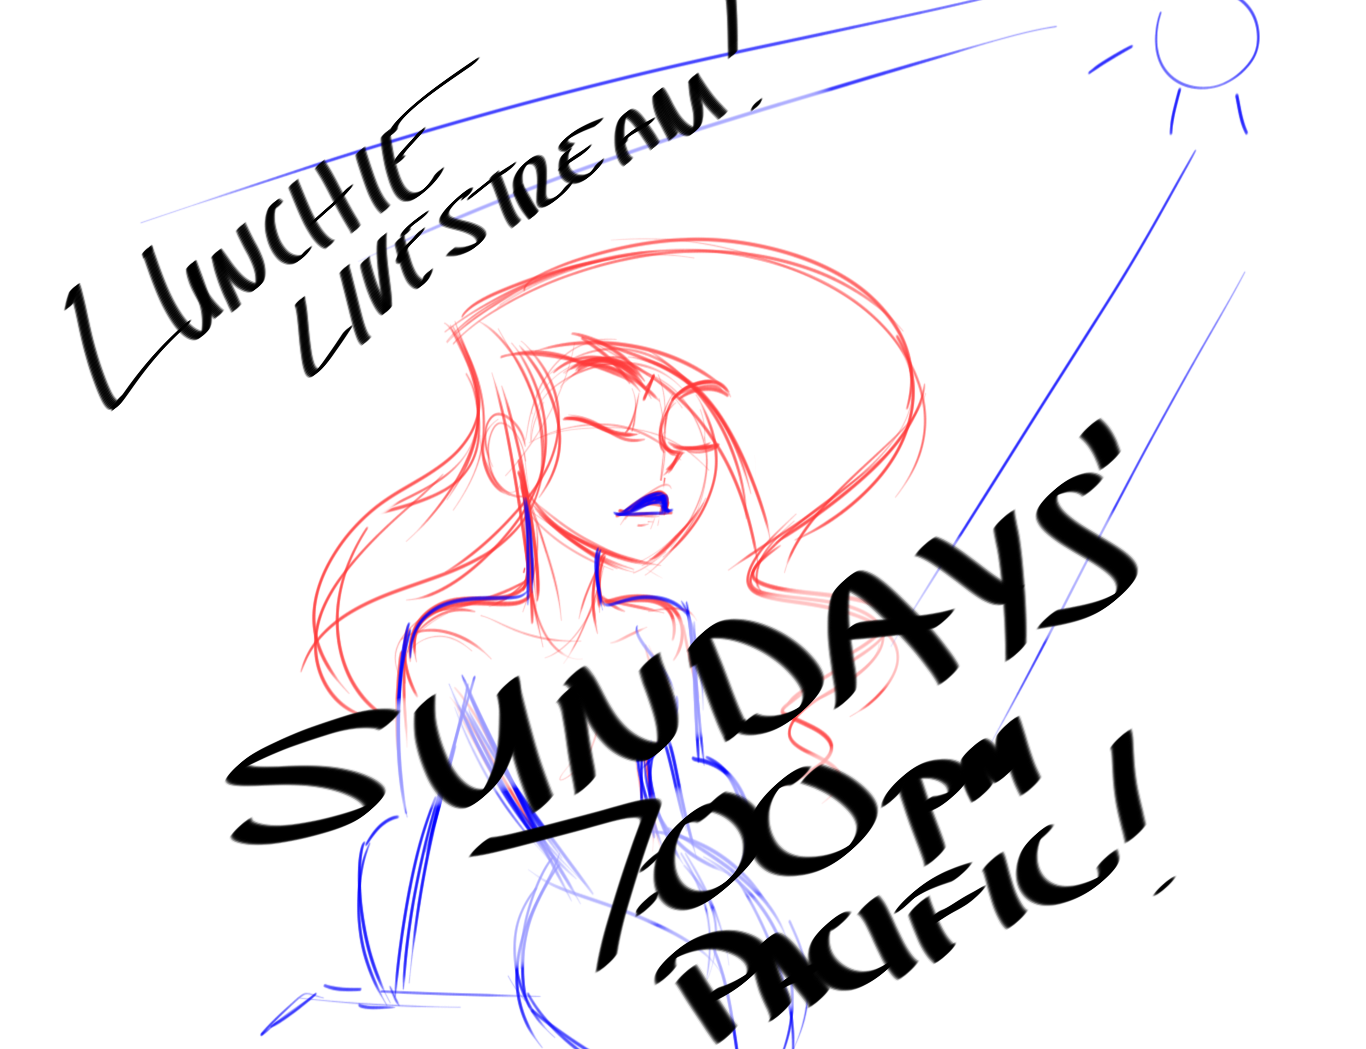 Livestream SUNDAY 7:00Pm Pacific time by isitlunchyet on ...